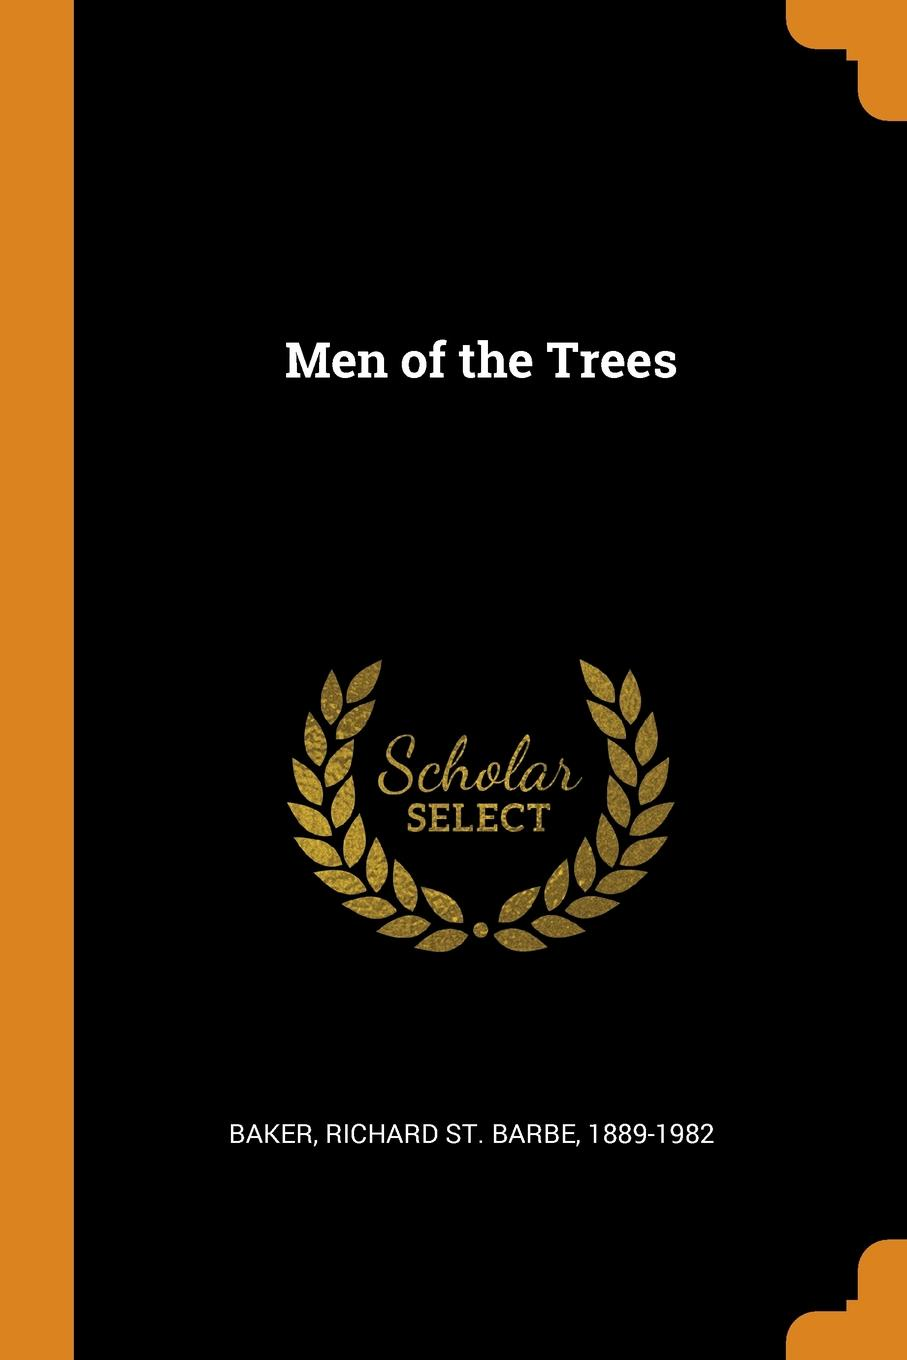 Richard St. Barbe Baker Men of the Trees